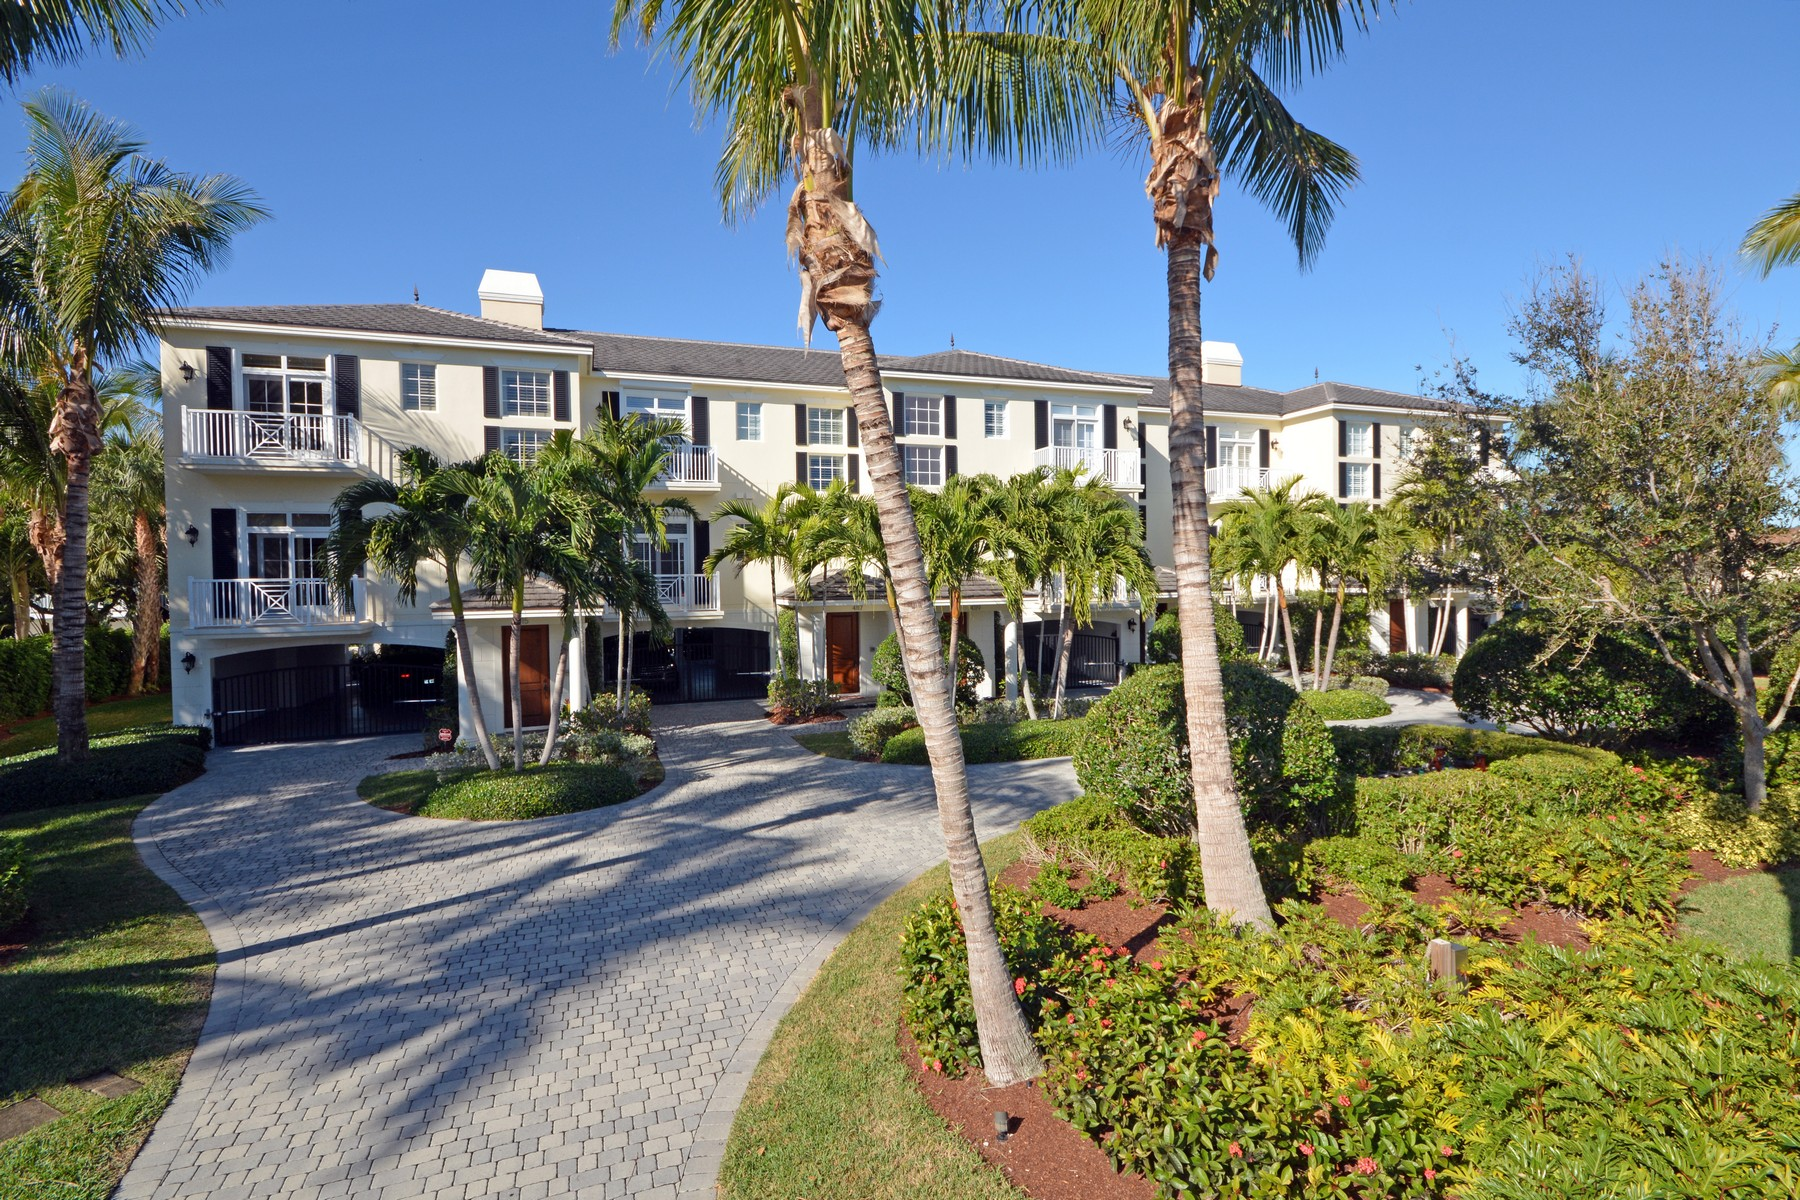 Single Family Homes for Sale at Elegant Three Story Townhouse, One Block From the Ocean 4121 Silver Palm Drive Vero Beach, Florida 32963 United States